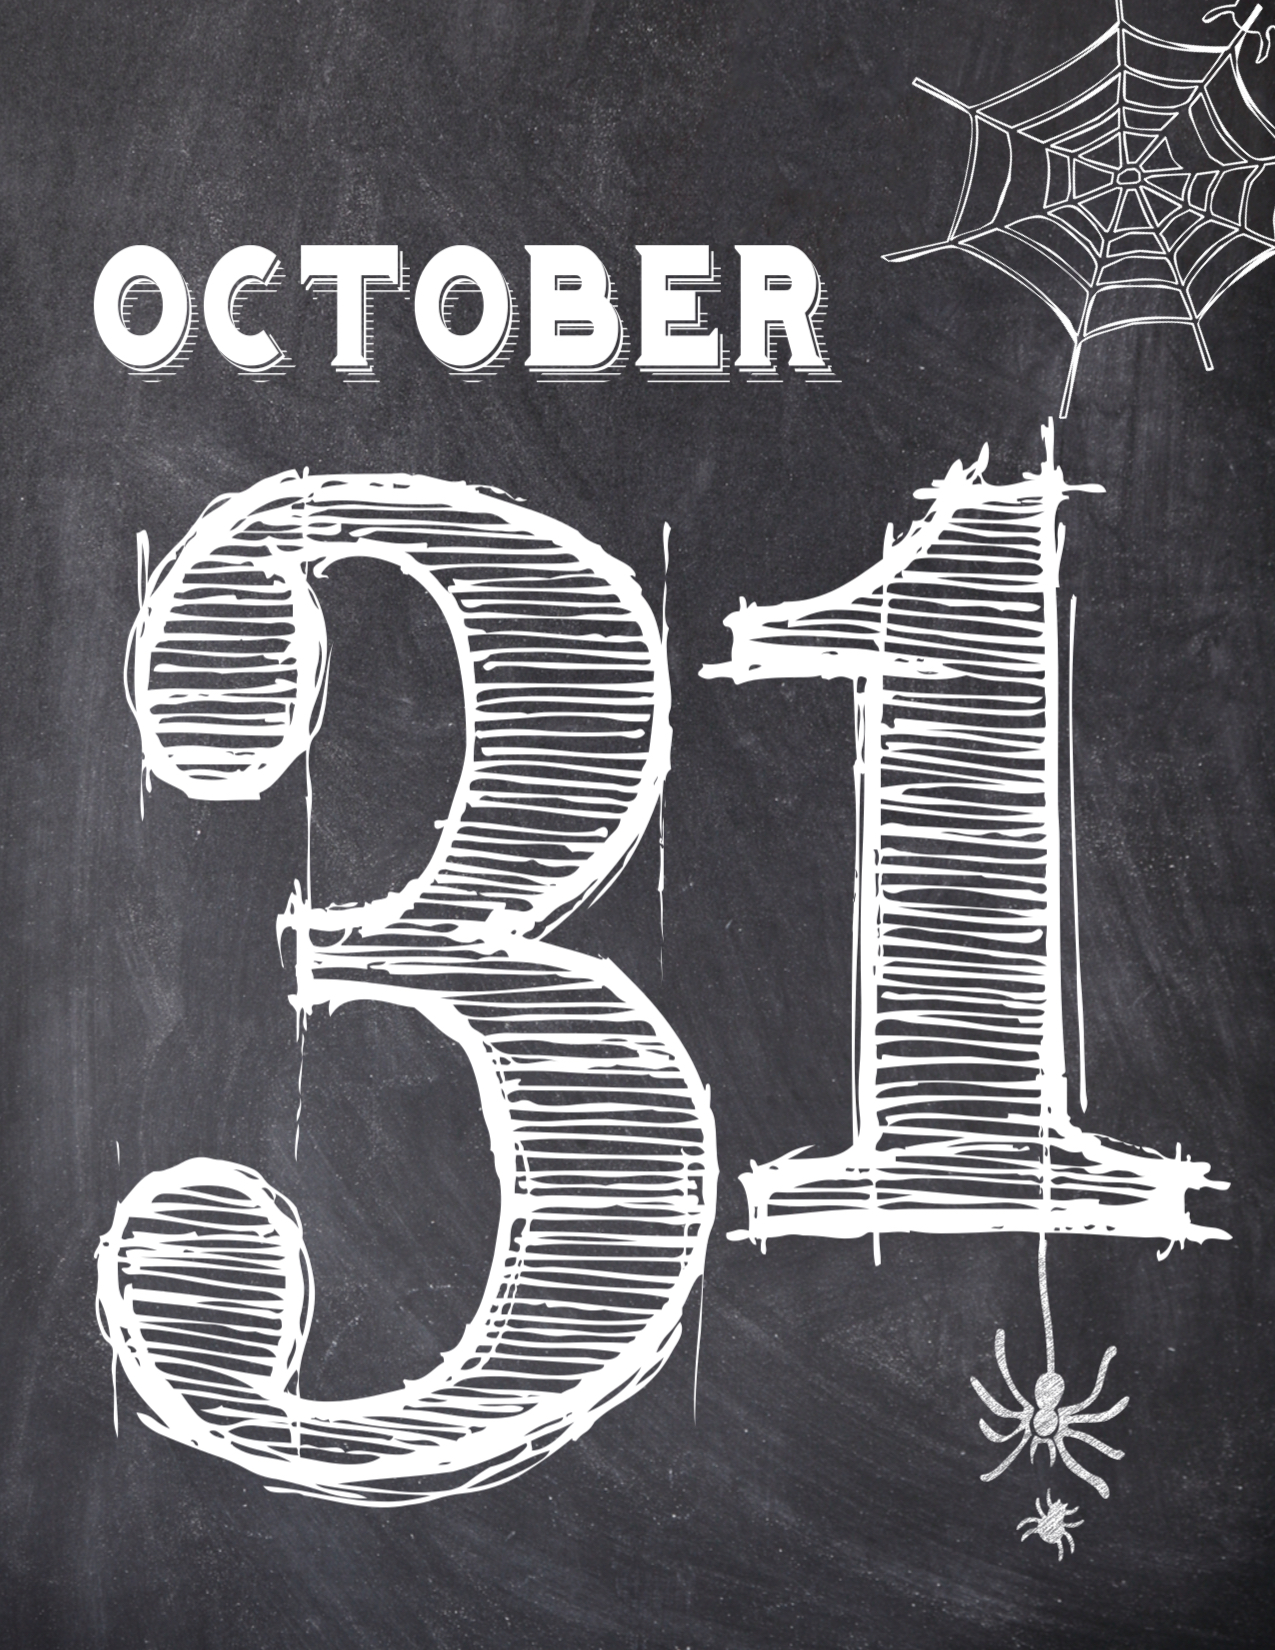 Halloween October 31 Wall Art Free Printable  Paper Trail - October Halloween